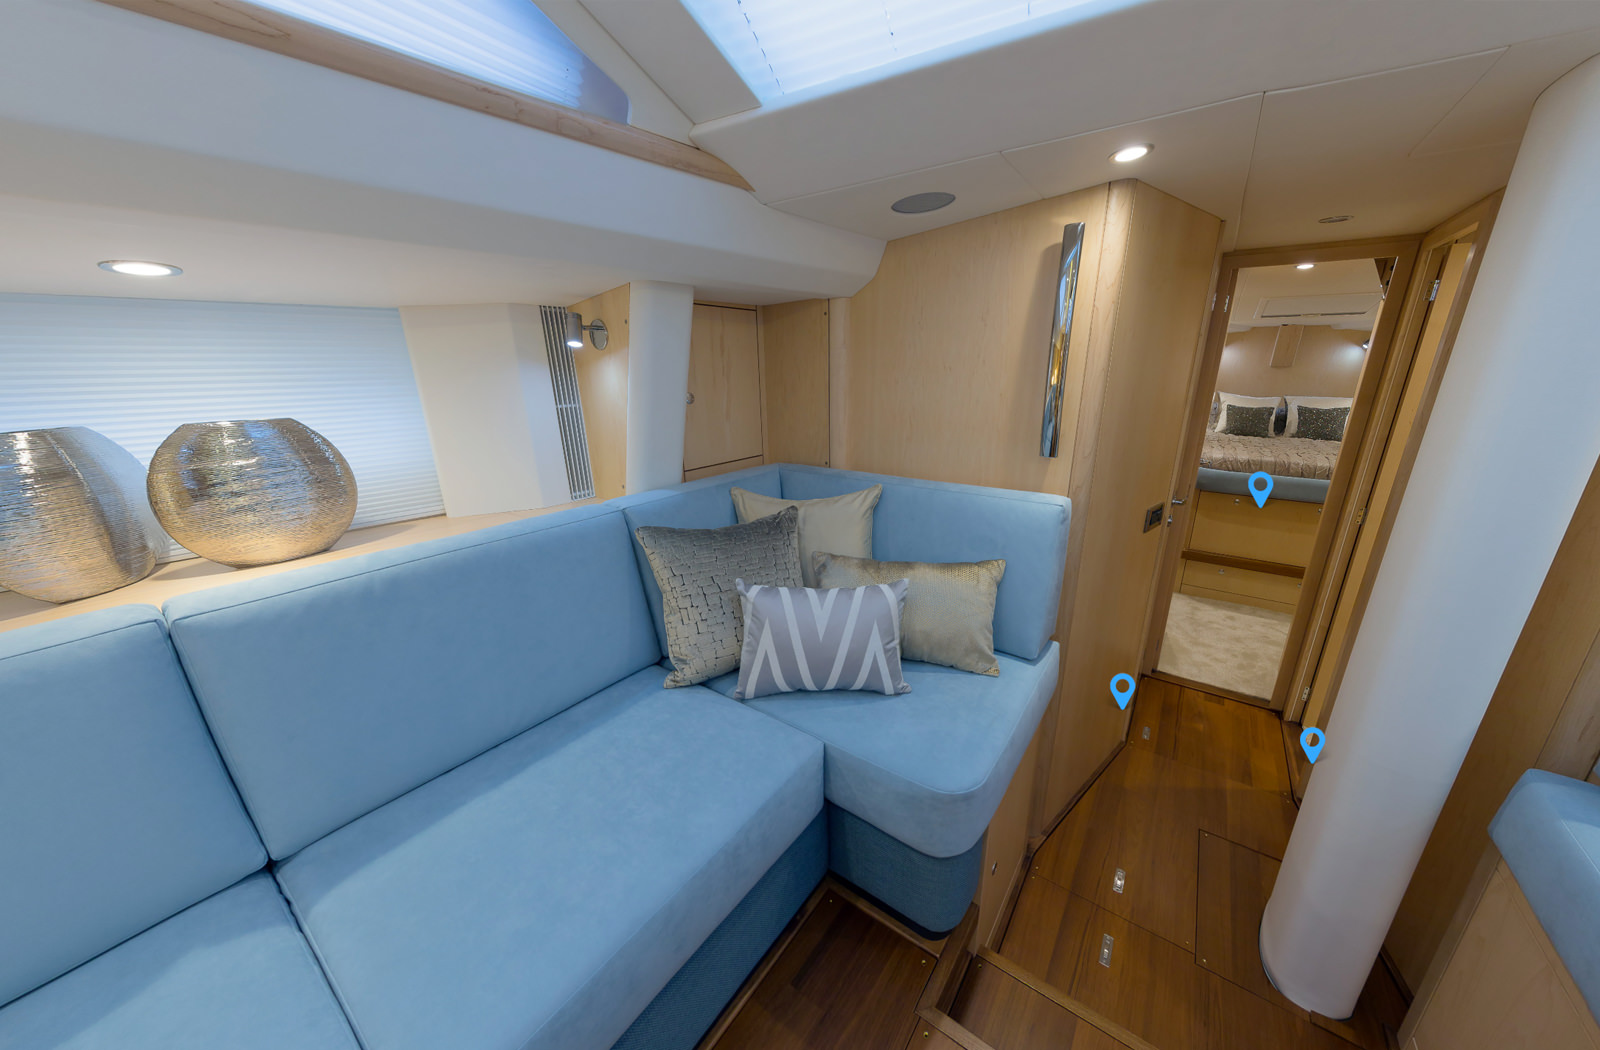 Oyster 545 yacht 360 photography